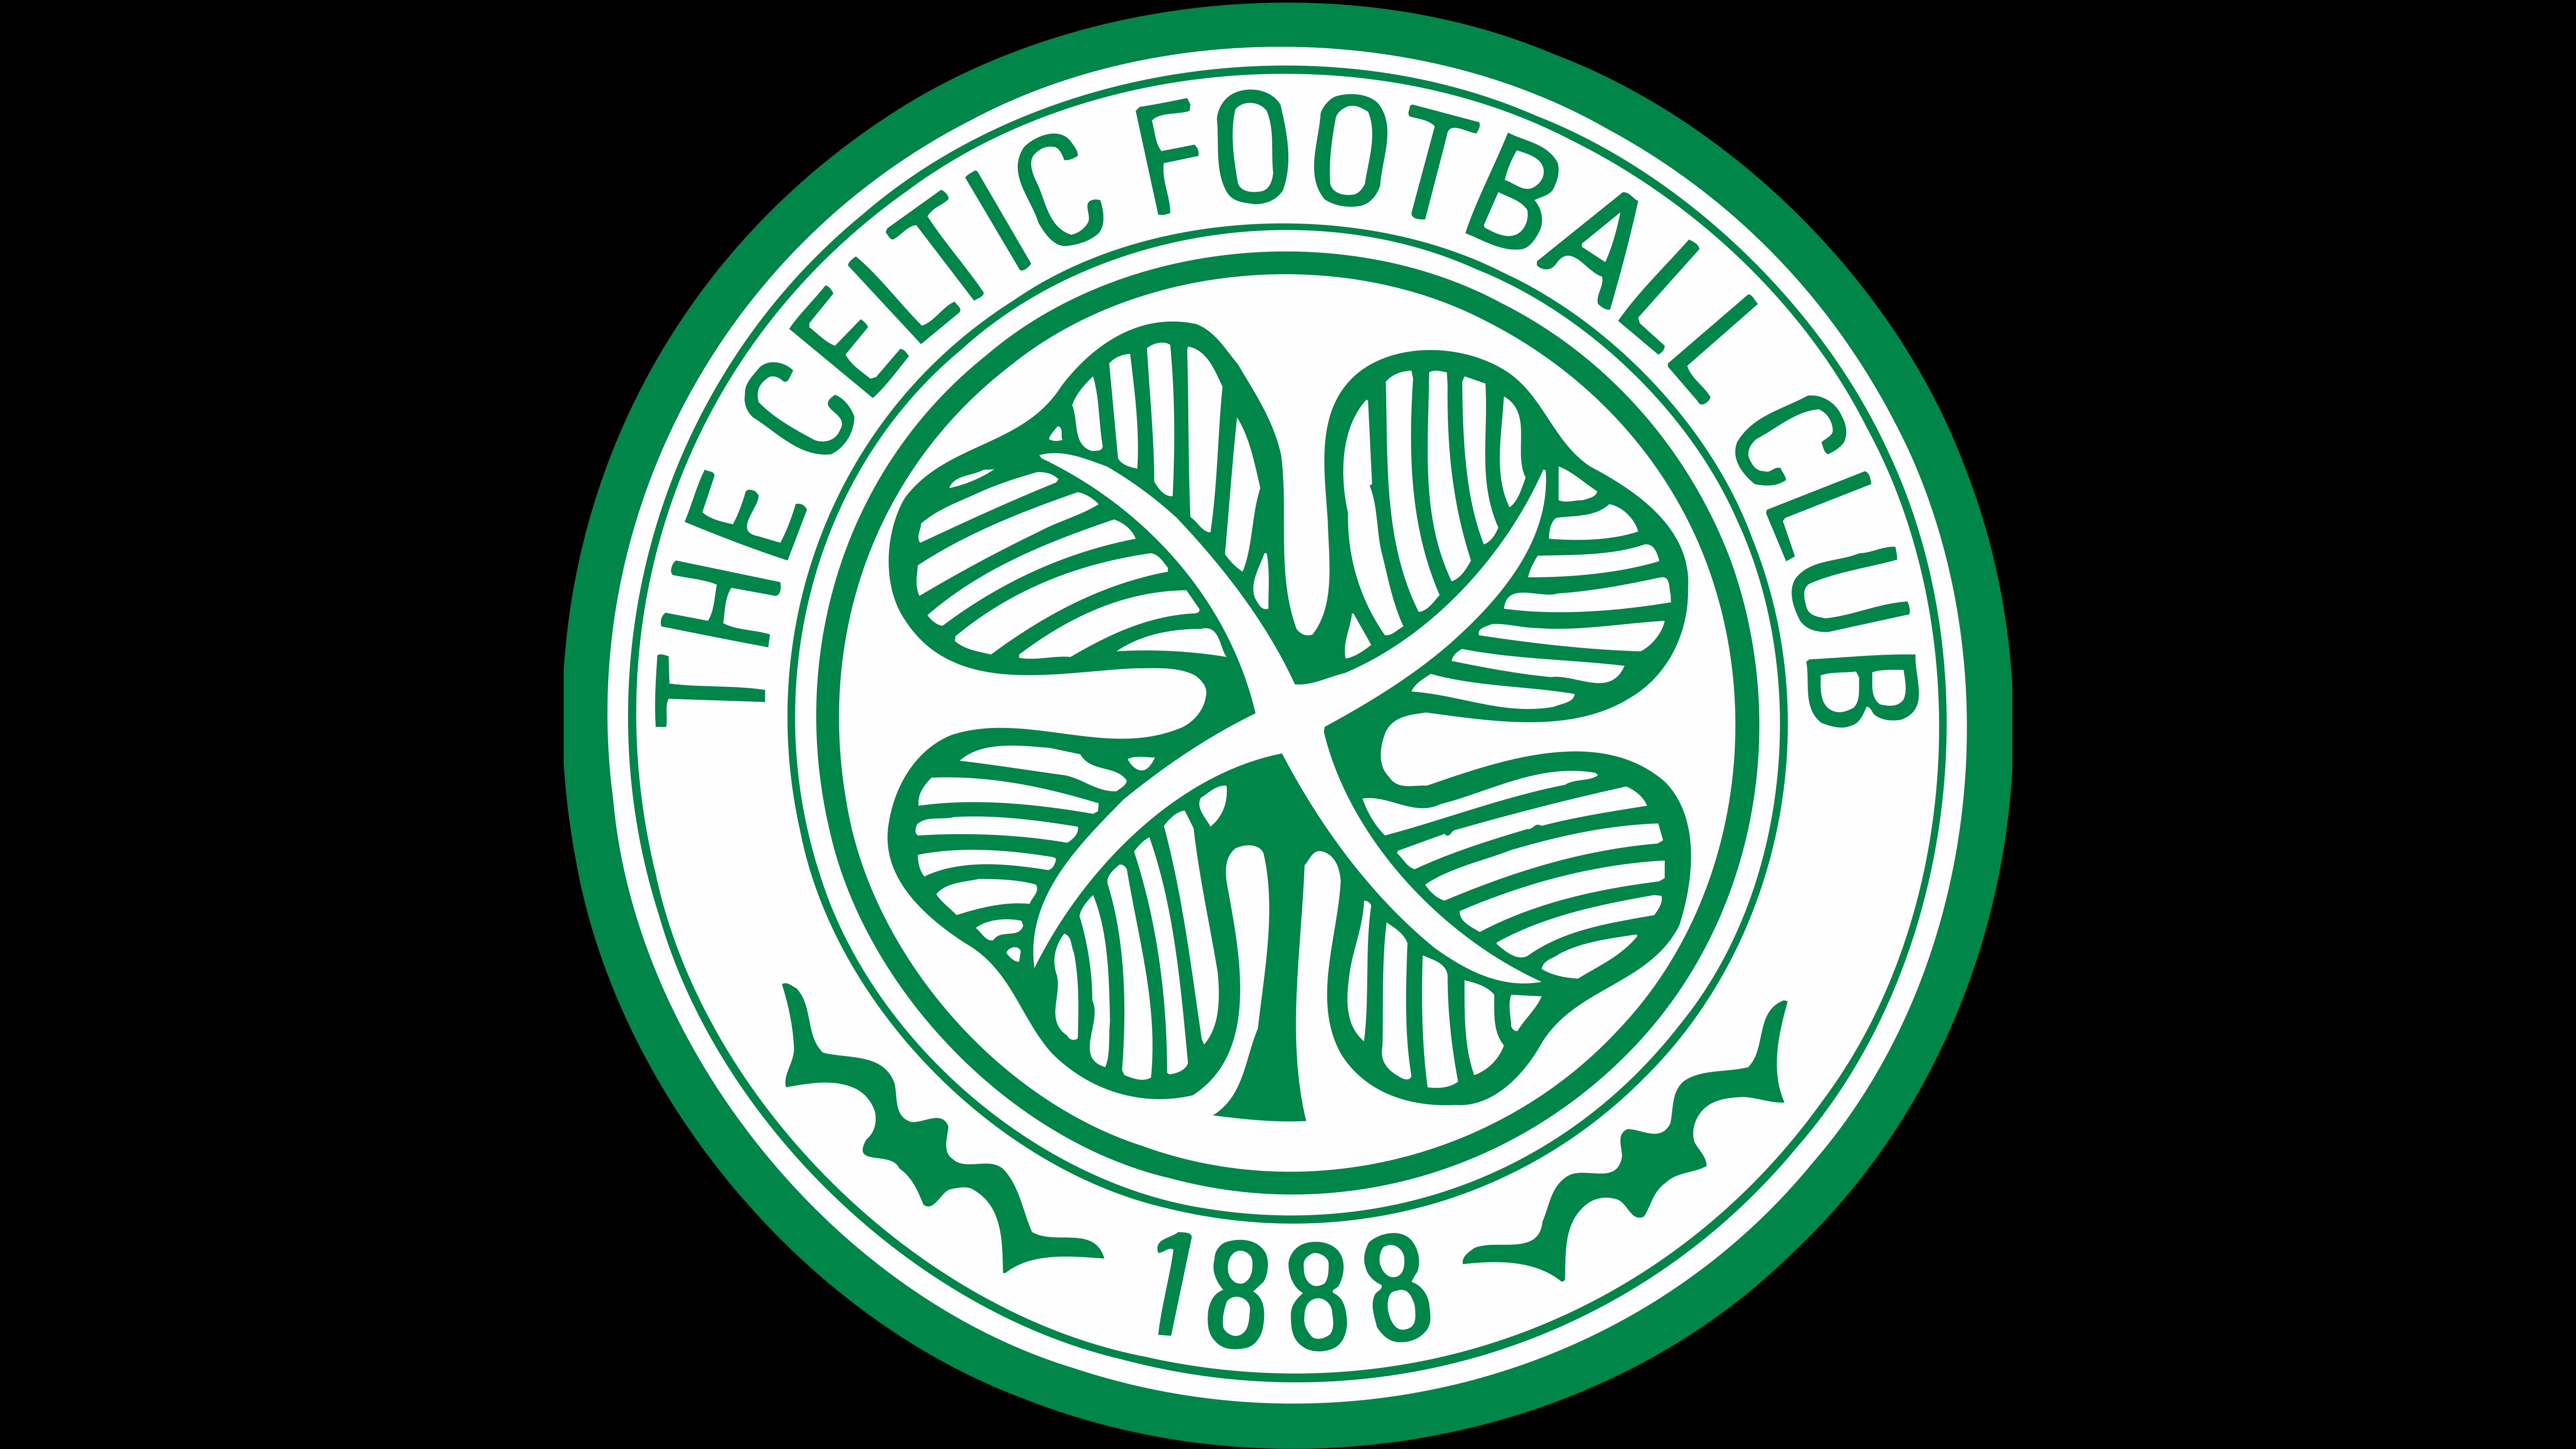 1 Celtic F.C. HD Wallpapers | Backgrounds - Wallpaper Abyss